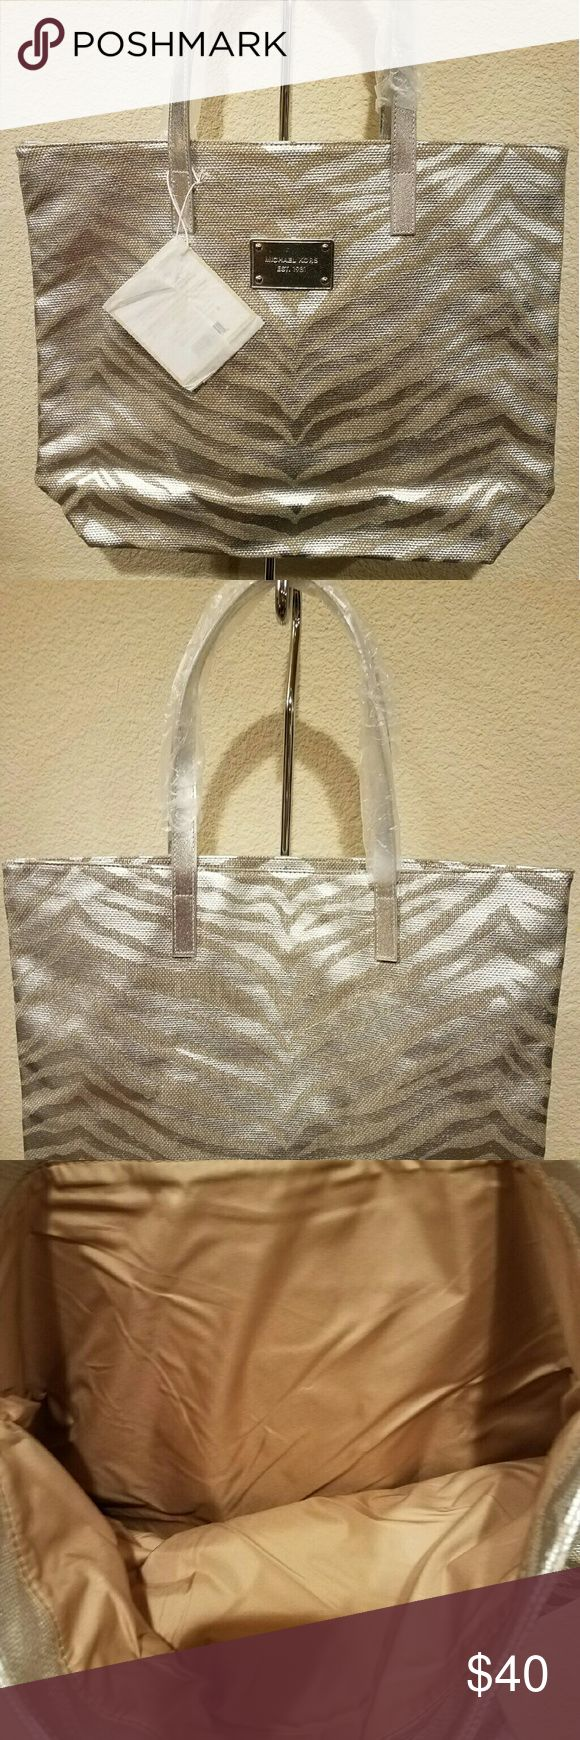 "Michael Kors Tote Silver and gold tiger print.  17""W x 13""H x 4""D Michael Kors Bags Totes"